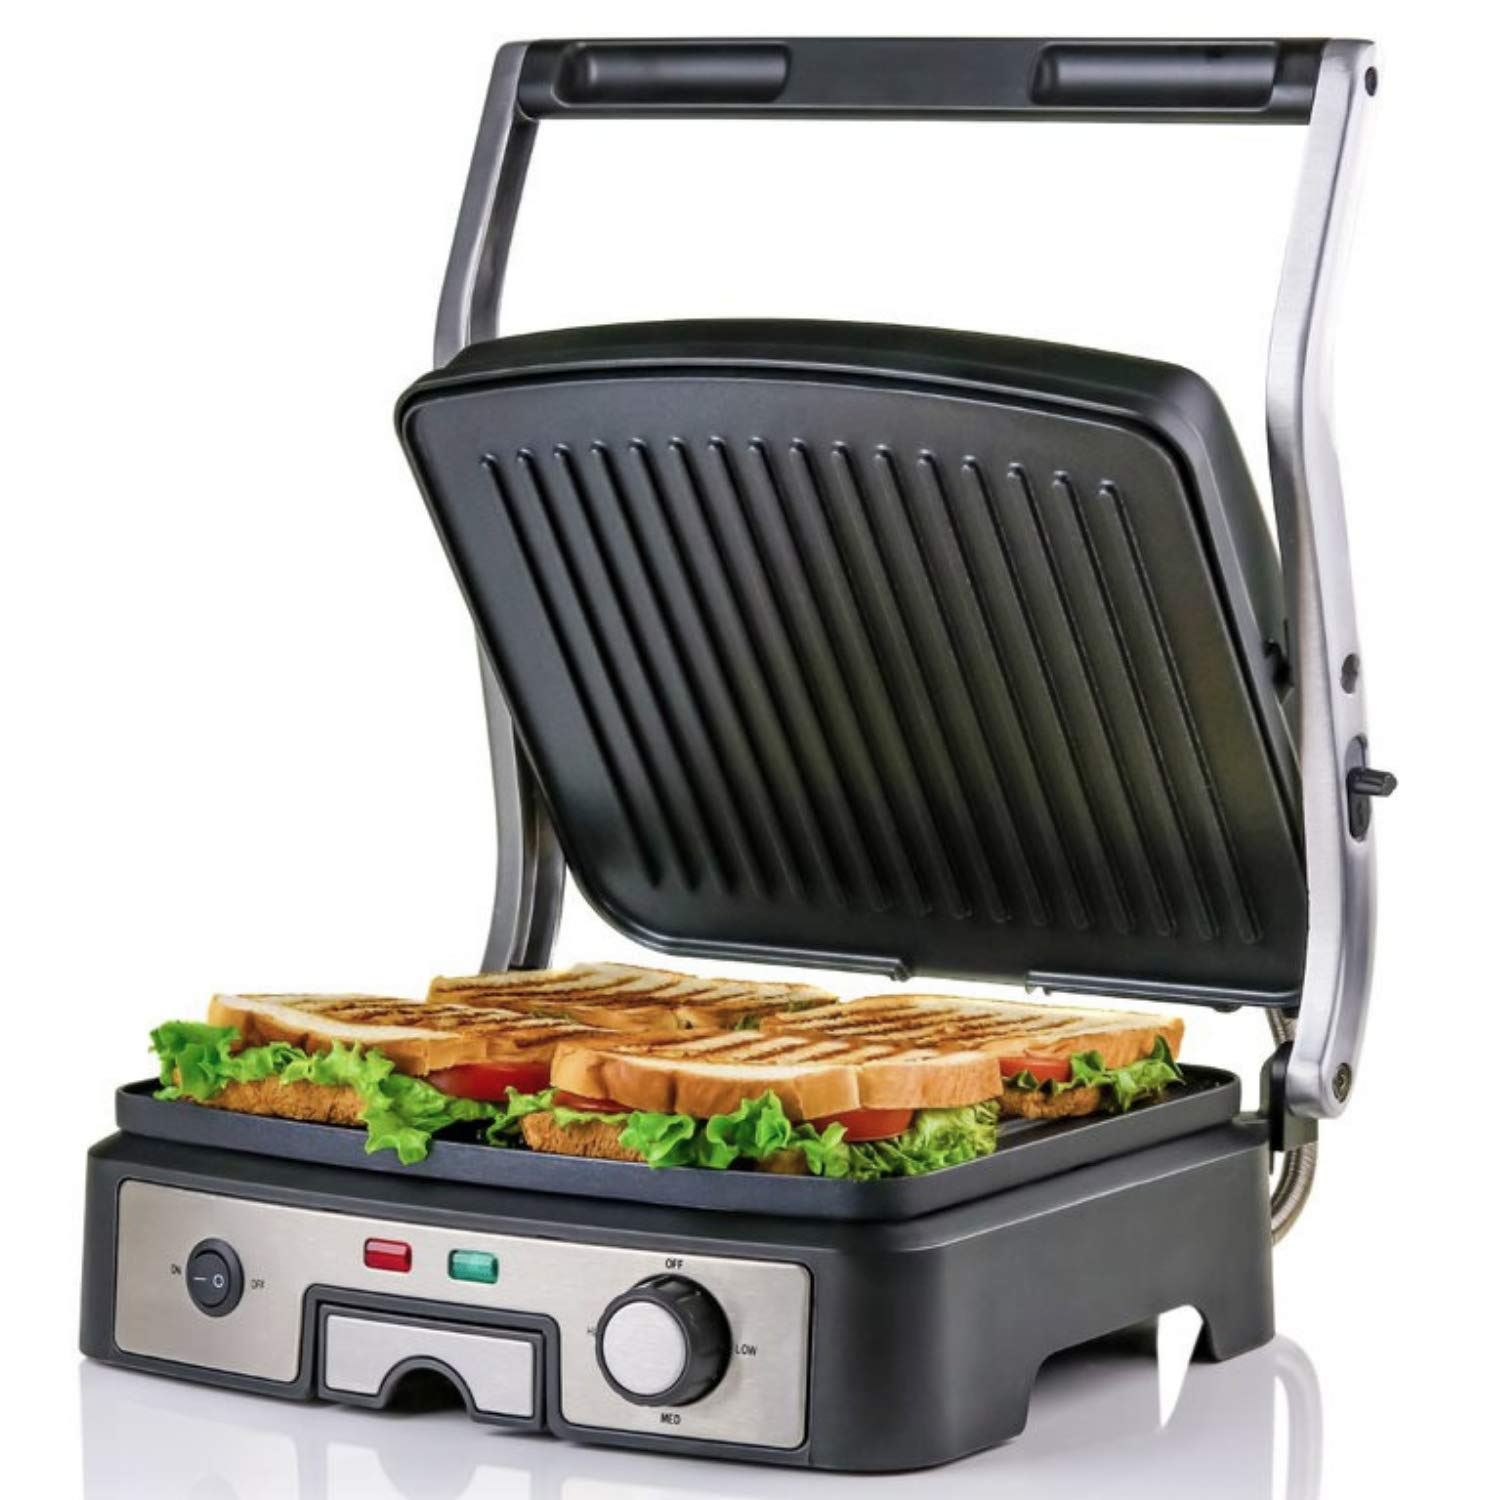 OVENTE GP1861BR Electric Panini, 180° Adjustable Hinge, Non-Stick, 3 Heat Settings, Drip Tray, Free Grill, 1500W, Brushed Silver, 6-Slice, Nickel by OVENTE